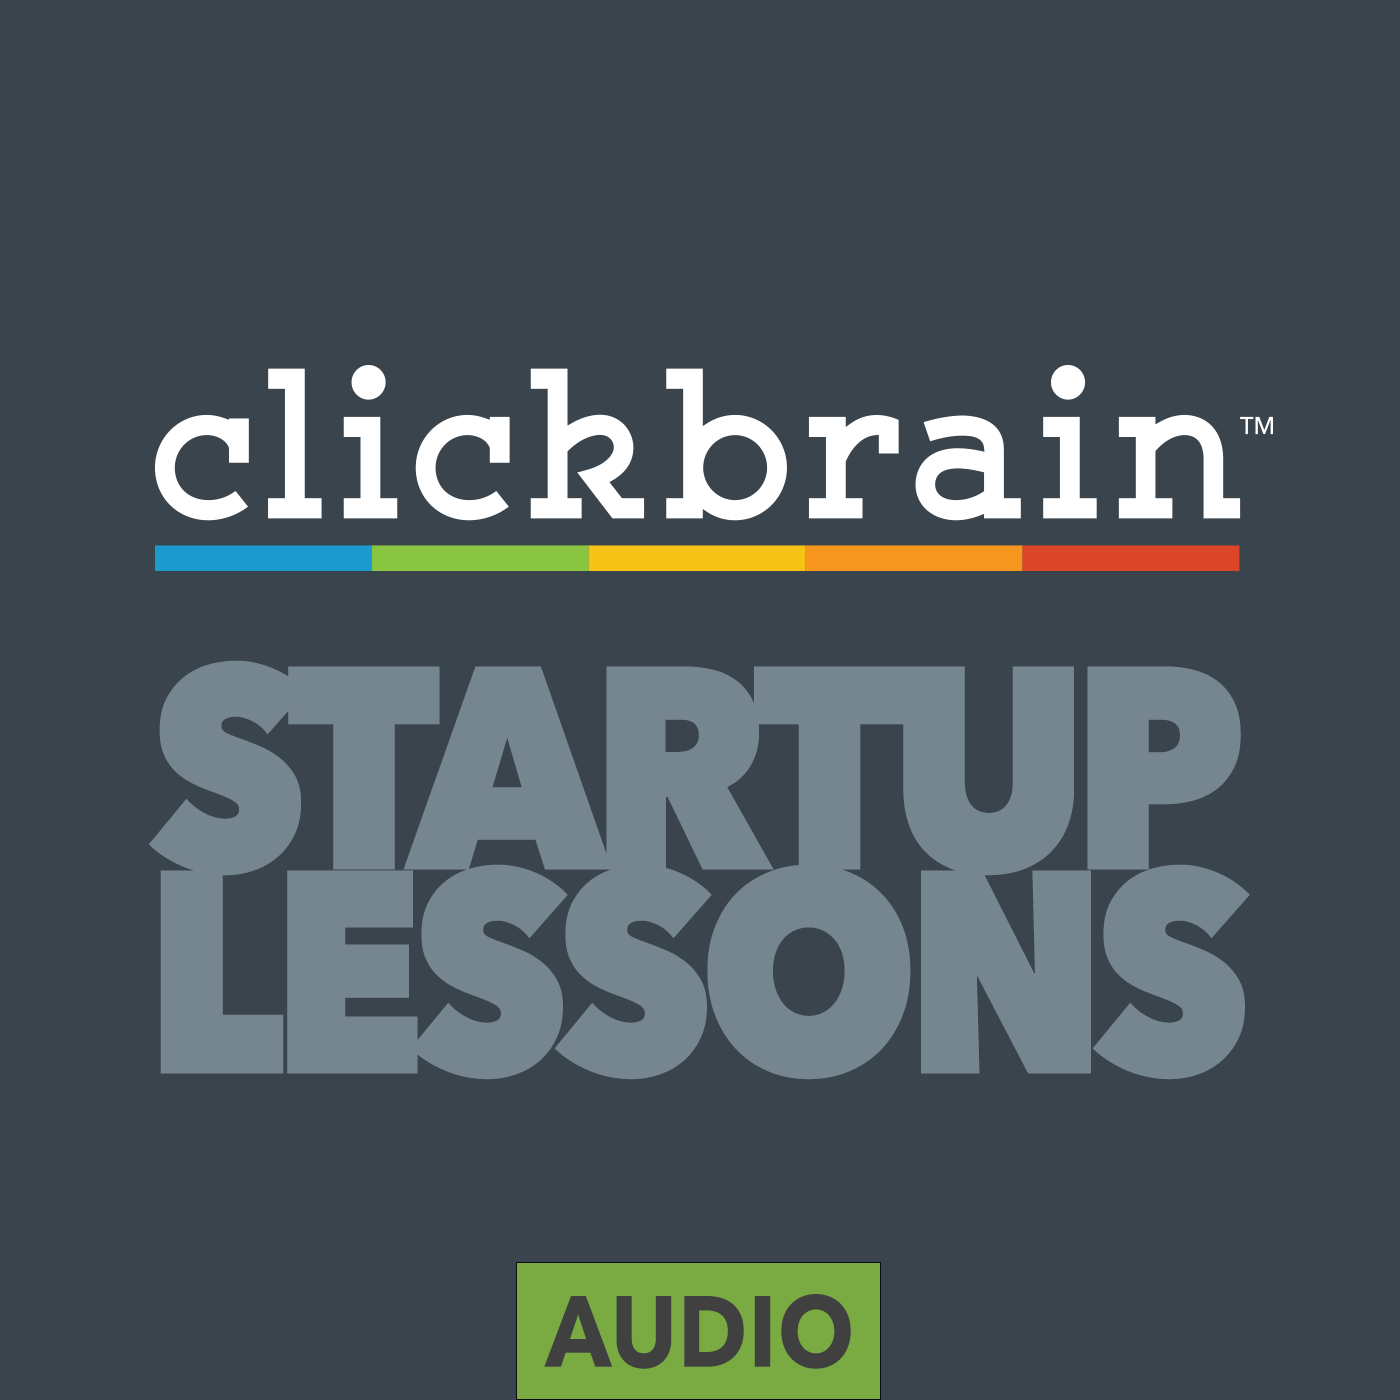 Startup Lessons By ClickBrain.com